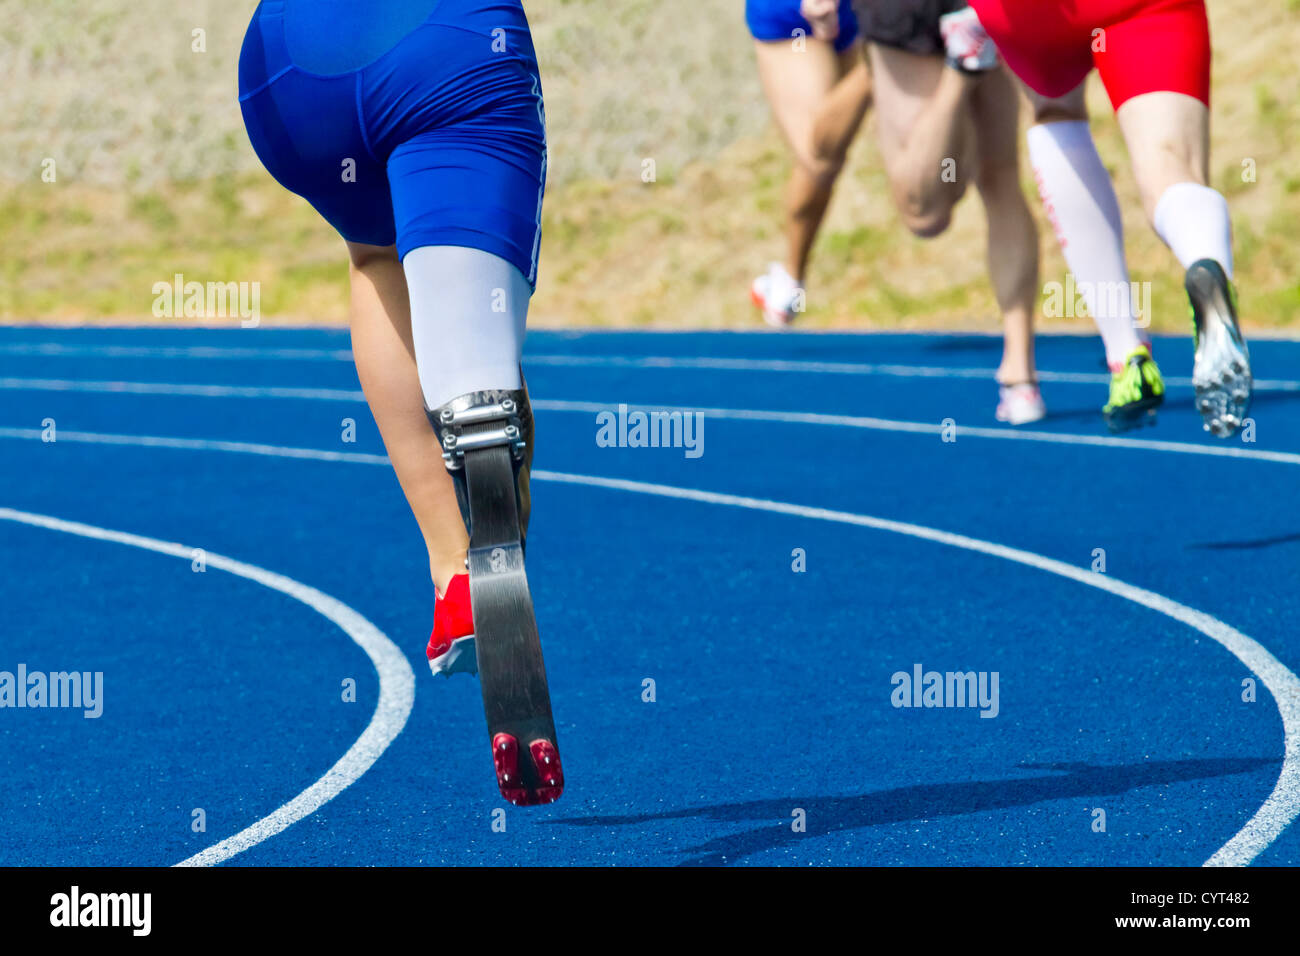 athlete with handicap on race track - Stock Image